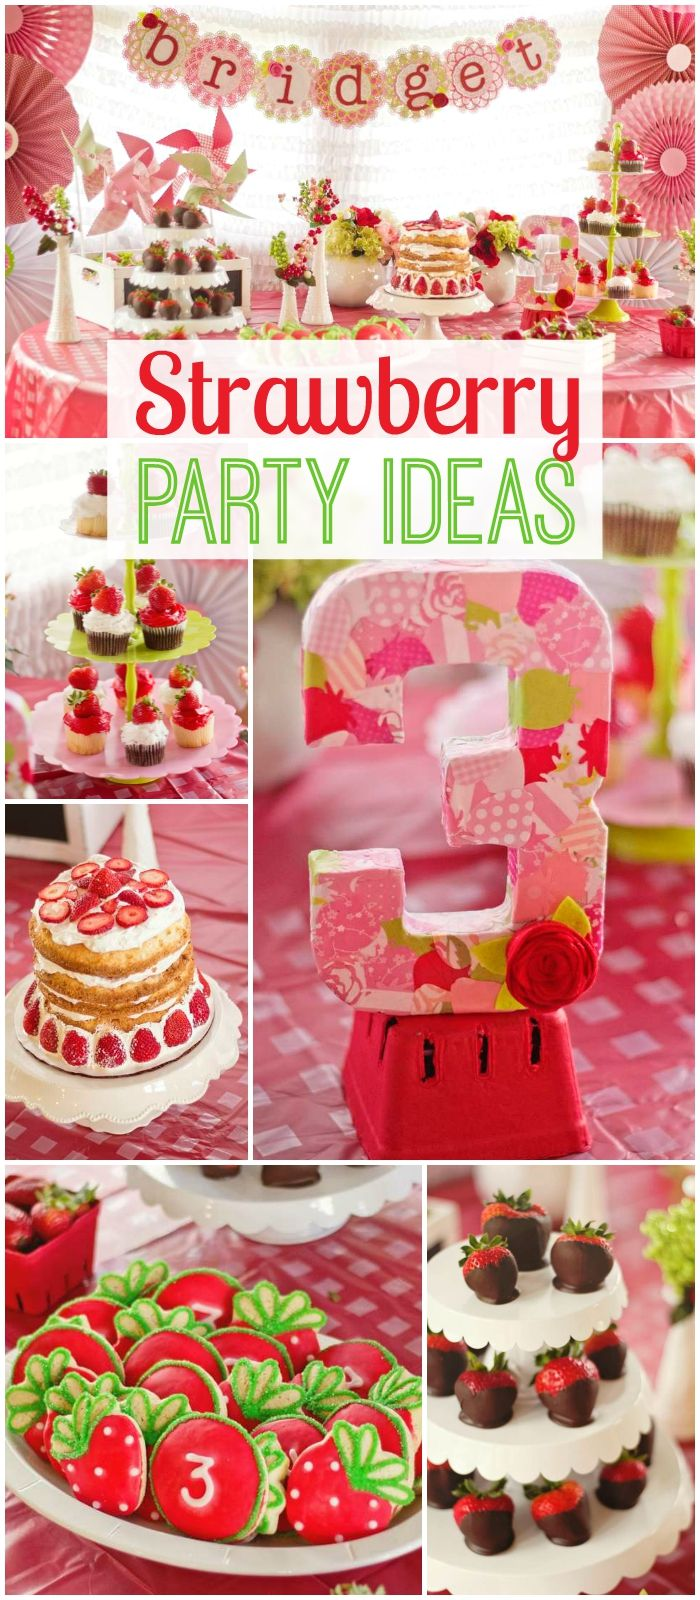 Best 20+ Themed birthday parties ideas on Pinterest | Themes for ...